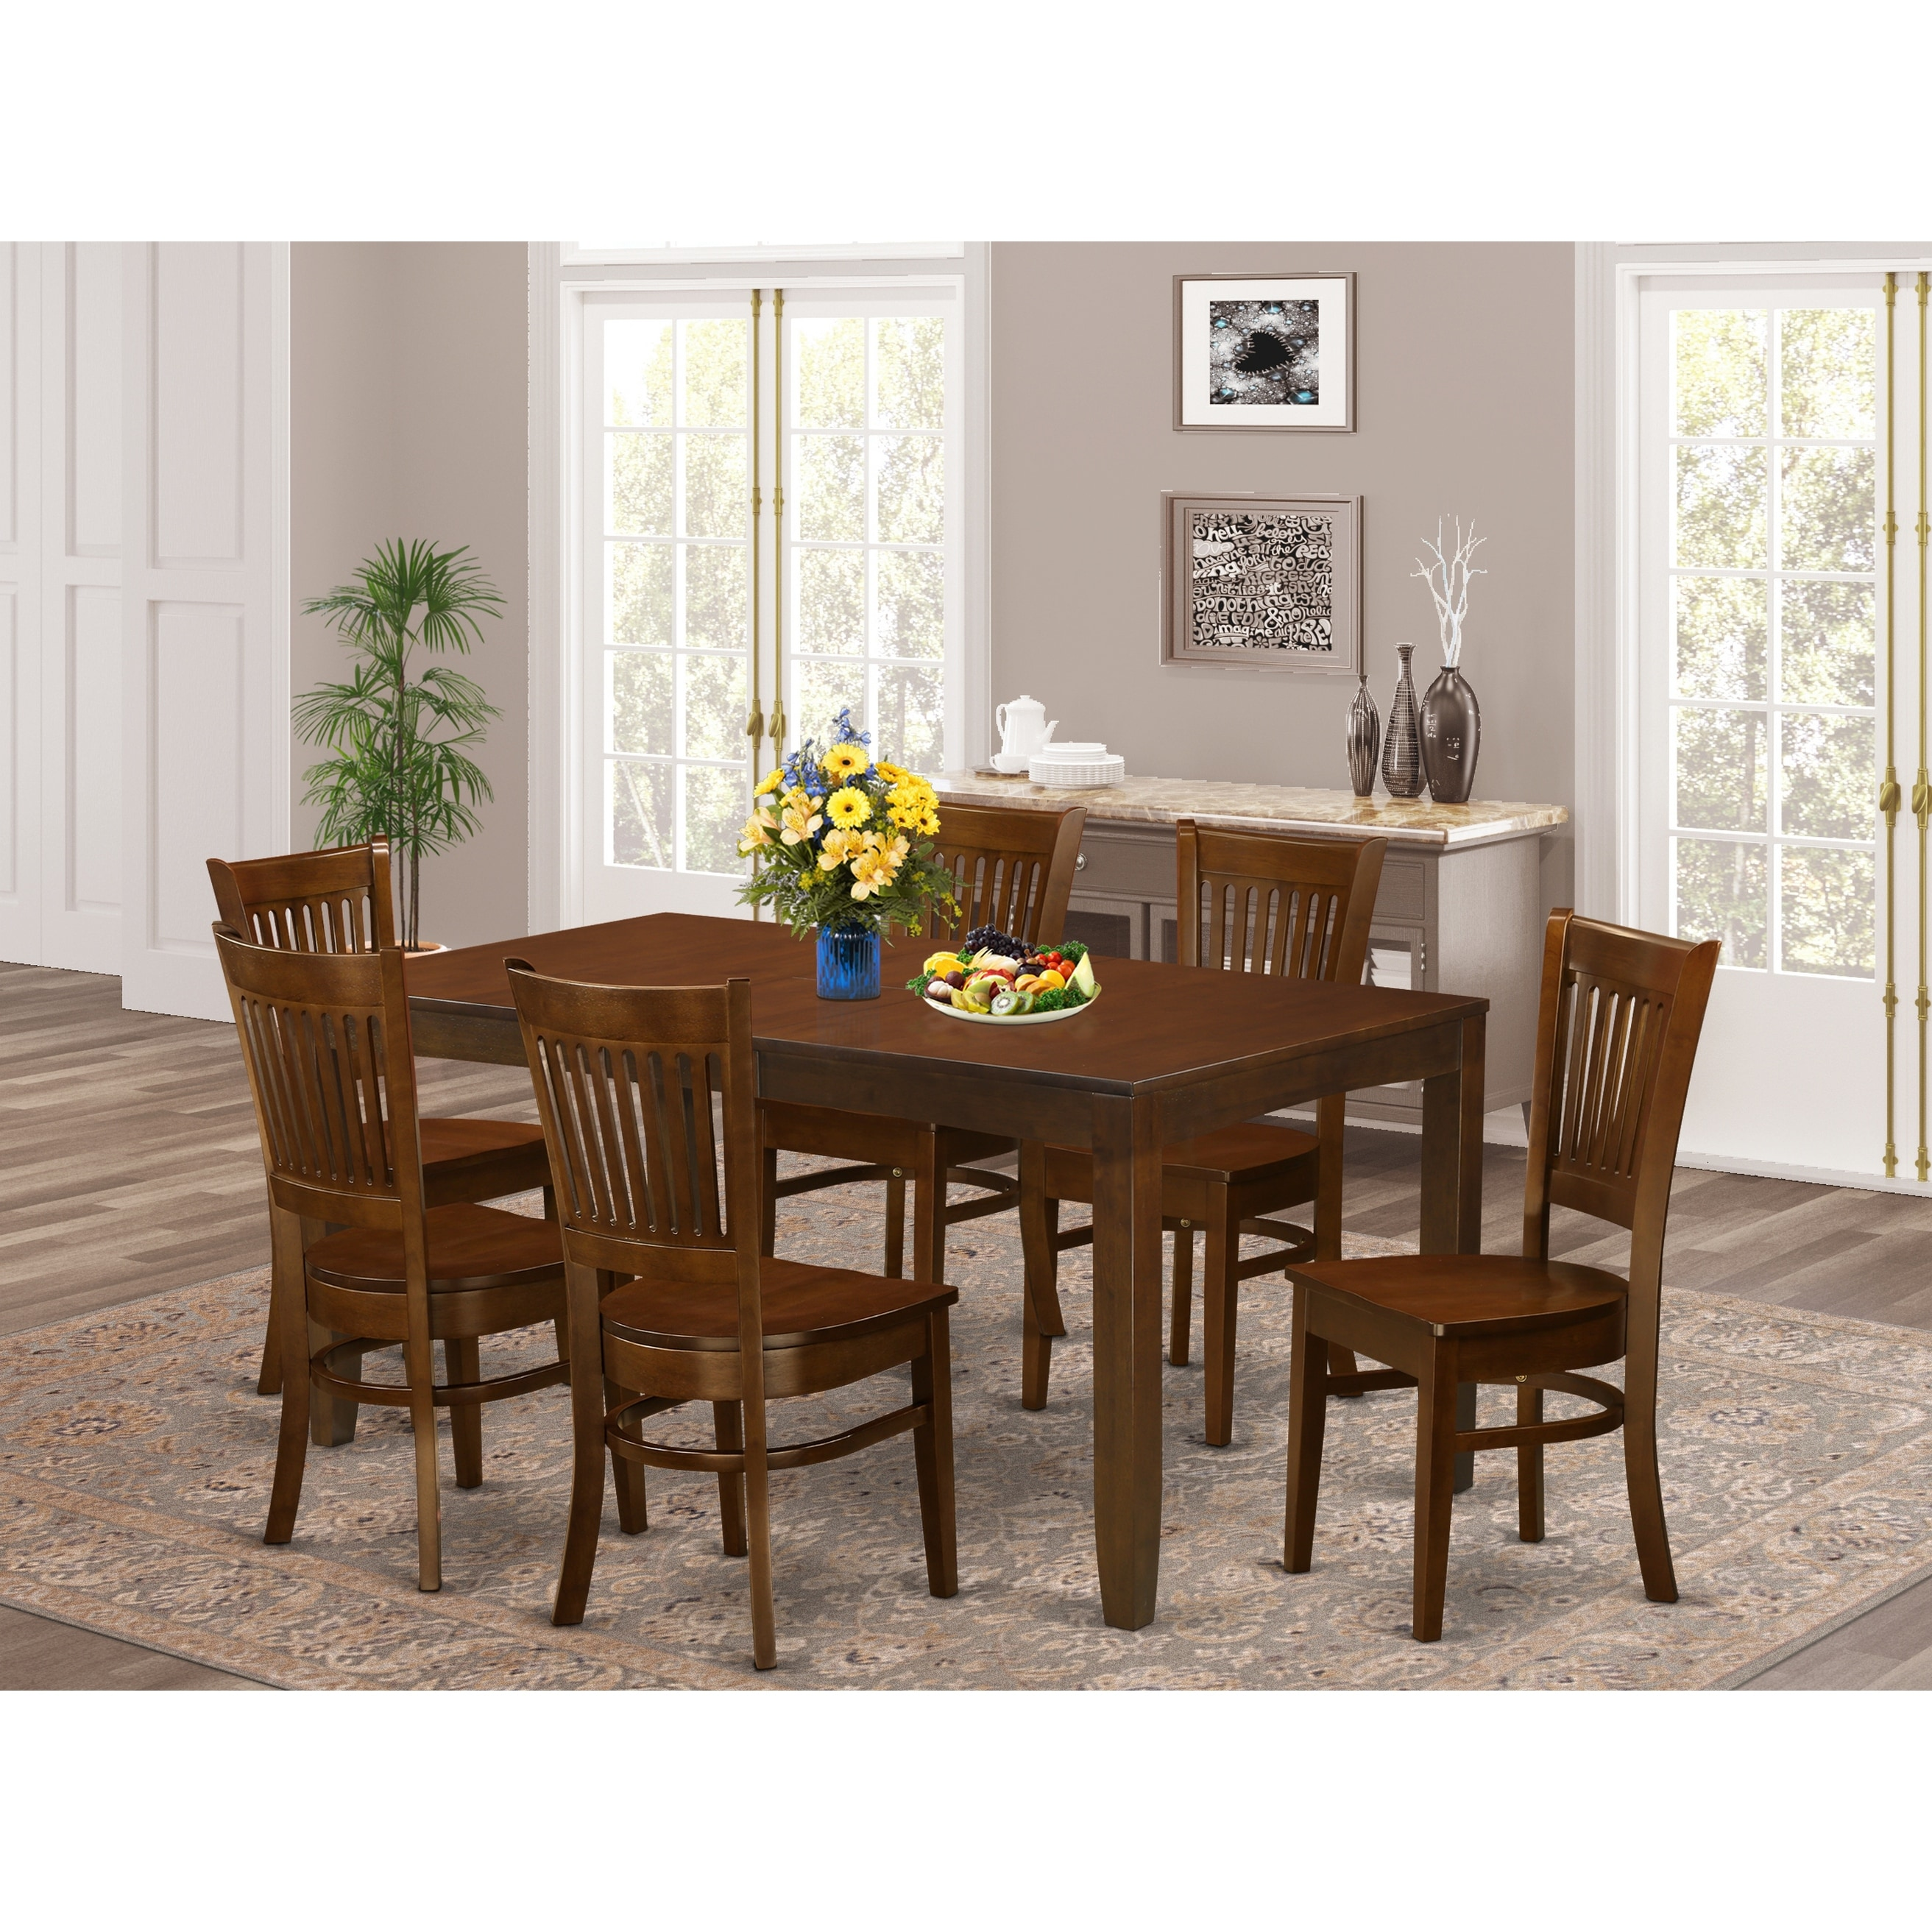 Picture of: Lyva7 Esp 7 Piece Lynfield Dining Table With One 12 Leaf And Six Kitchen Chairs In Espresso Color Overstock 14366558